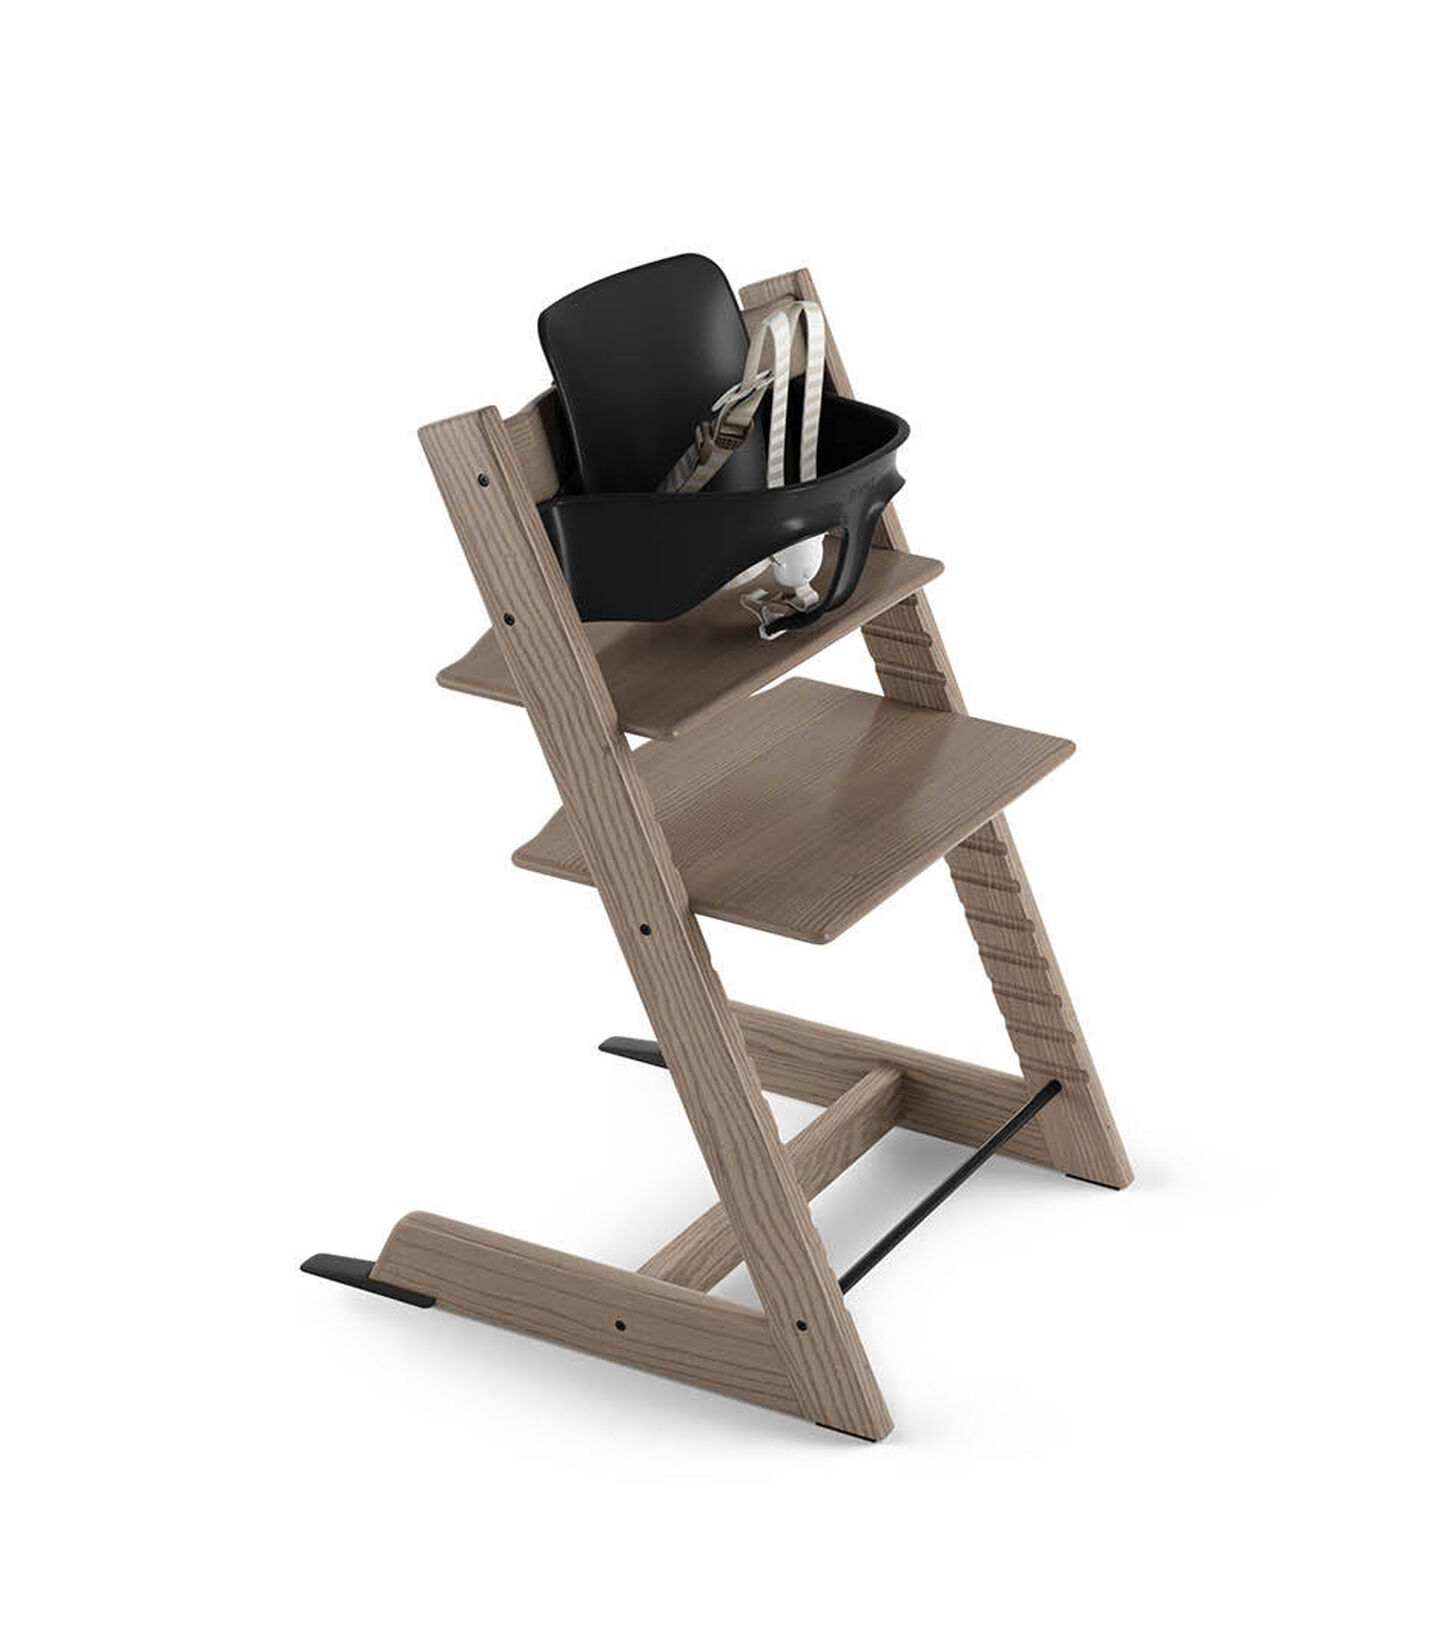 Tripp Trapp® Ash Limited Edition with Tripp Trapp® Baby Set Black. US version. 3D rendering.